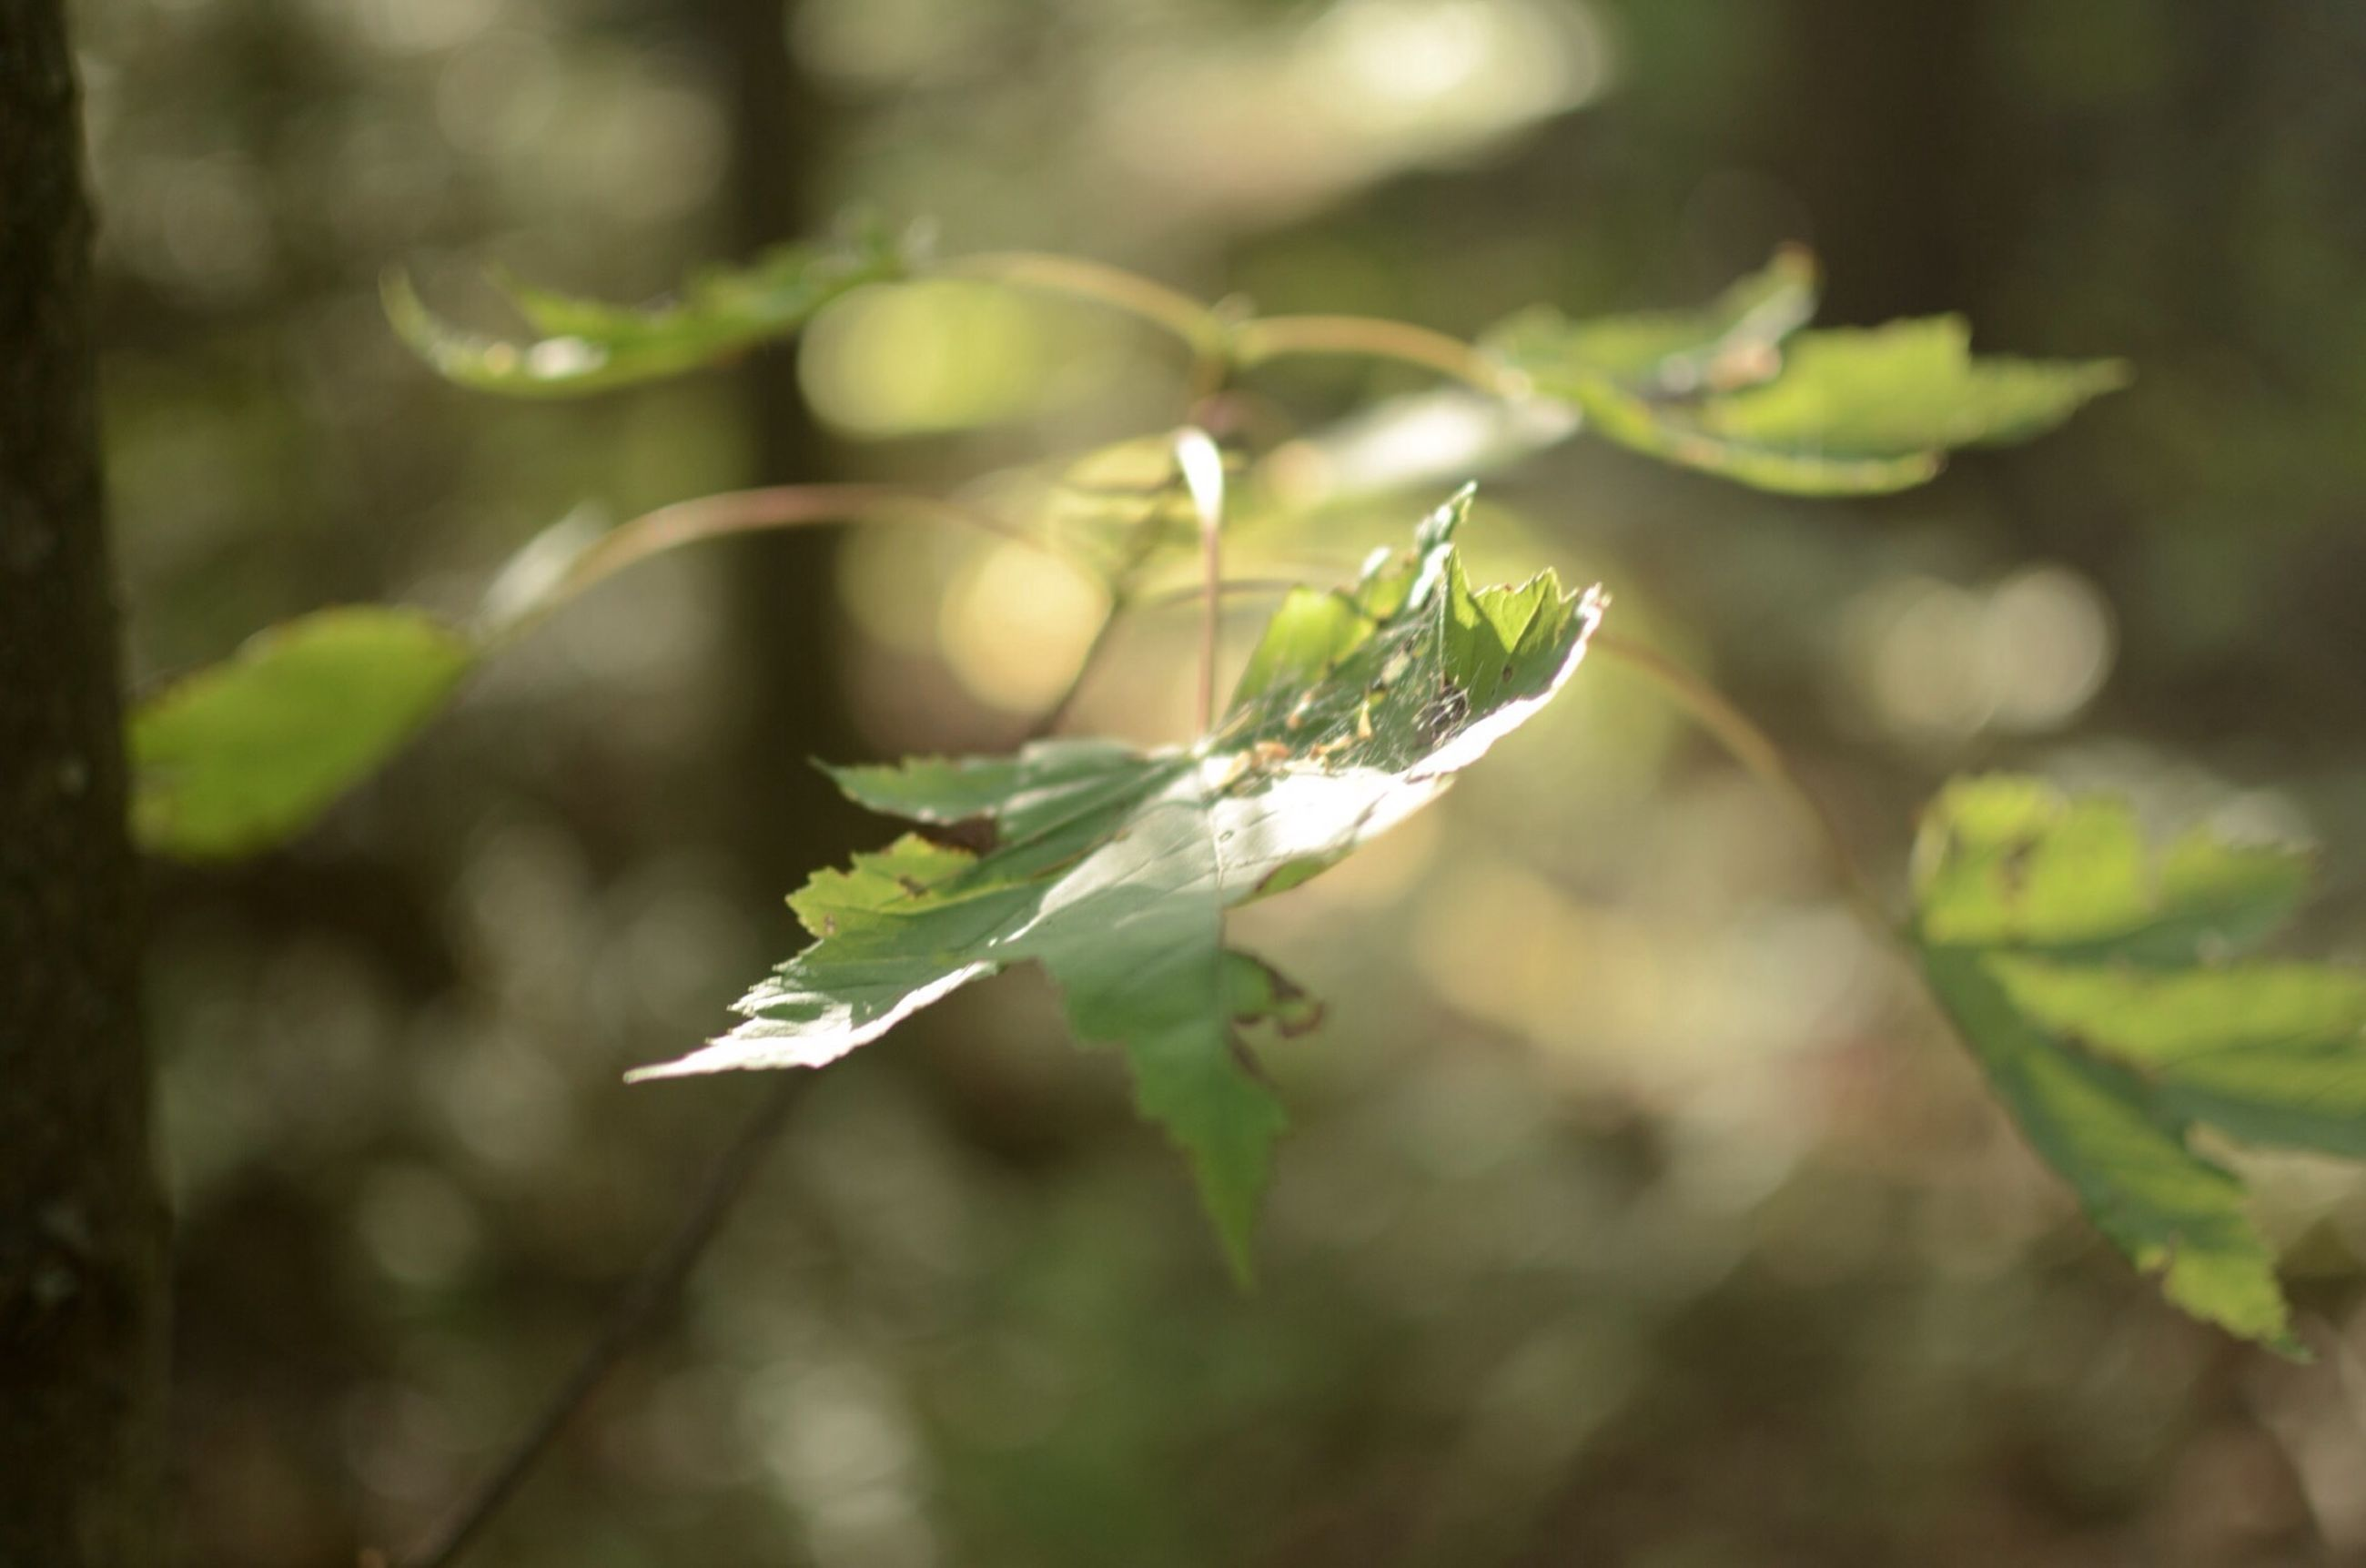 leaf, focus on foreground, growth, close-up, plant, green color, nature, selective focus, stem, growing, leaves, beauty in nature, twig, tranquility, branch, outdoors, day, no people, beginnings, sunlight